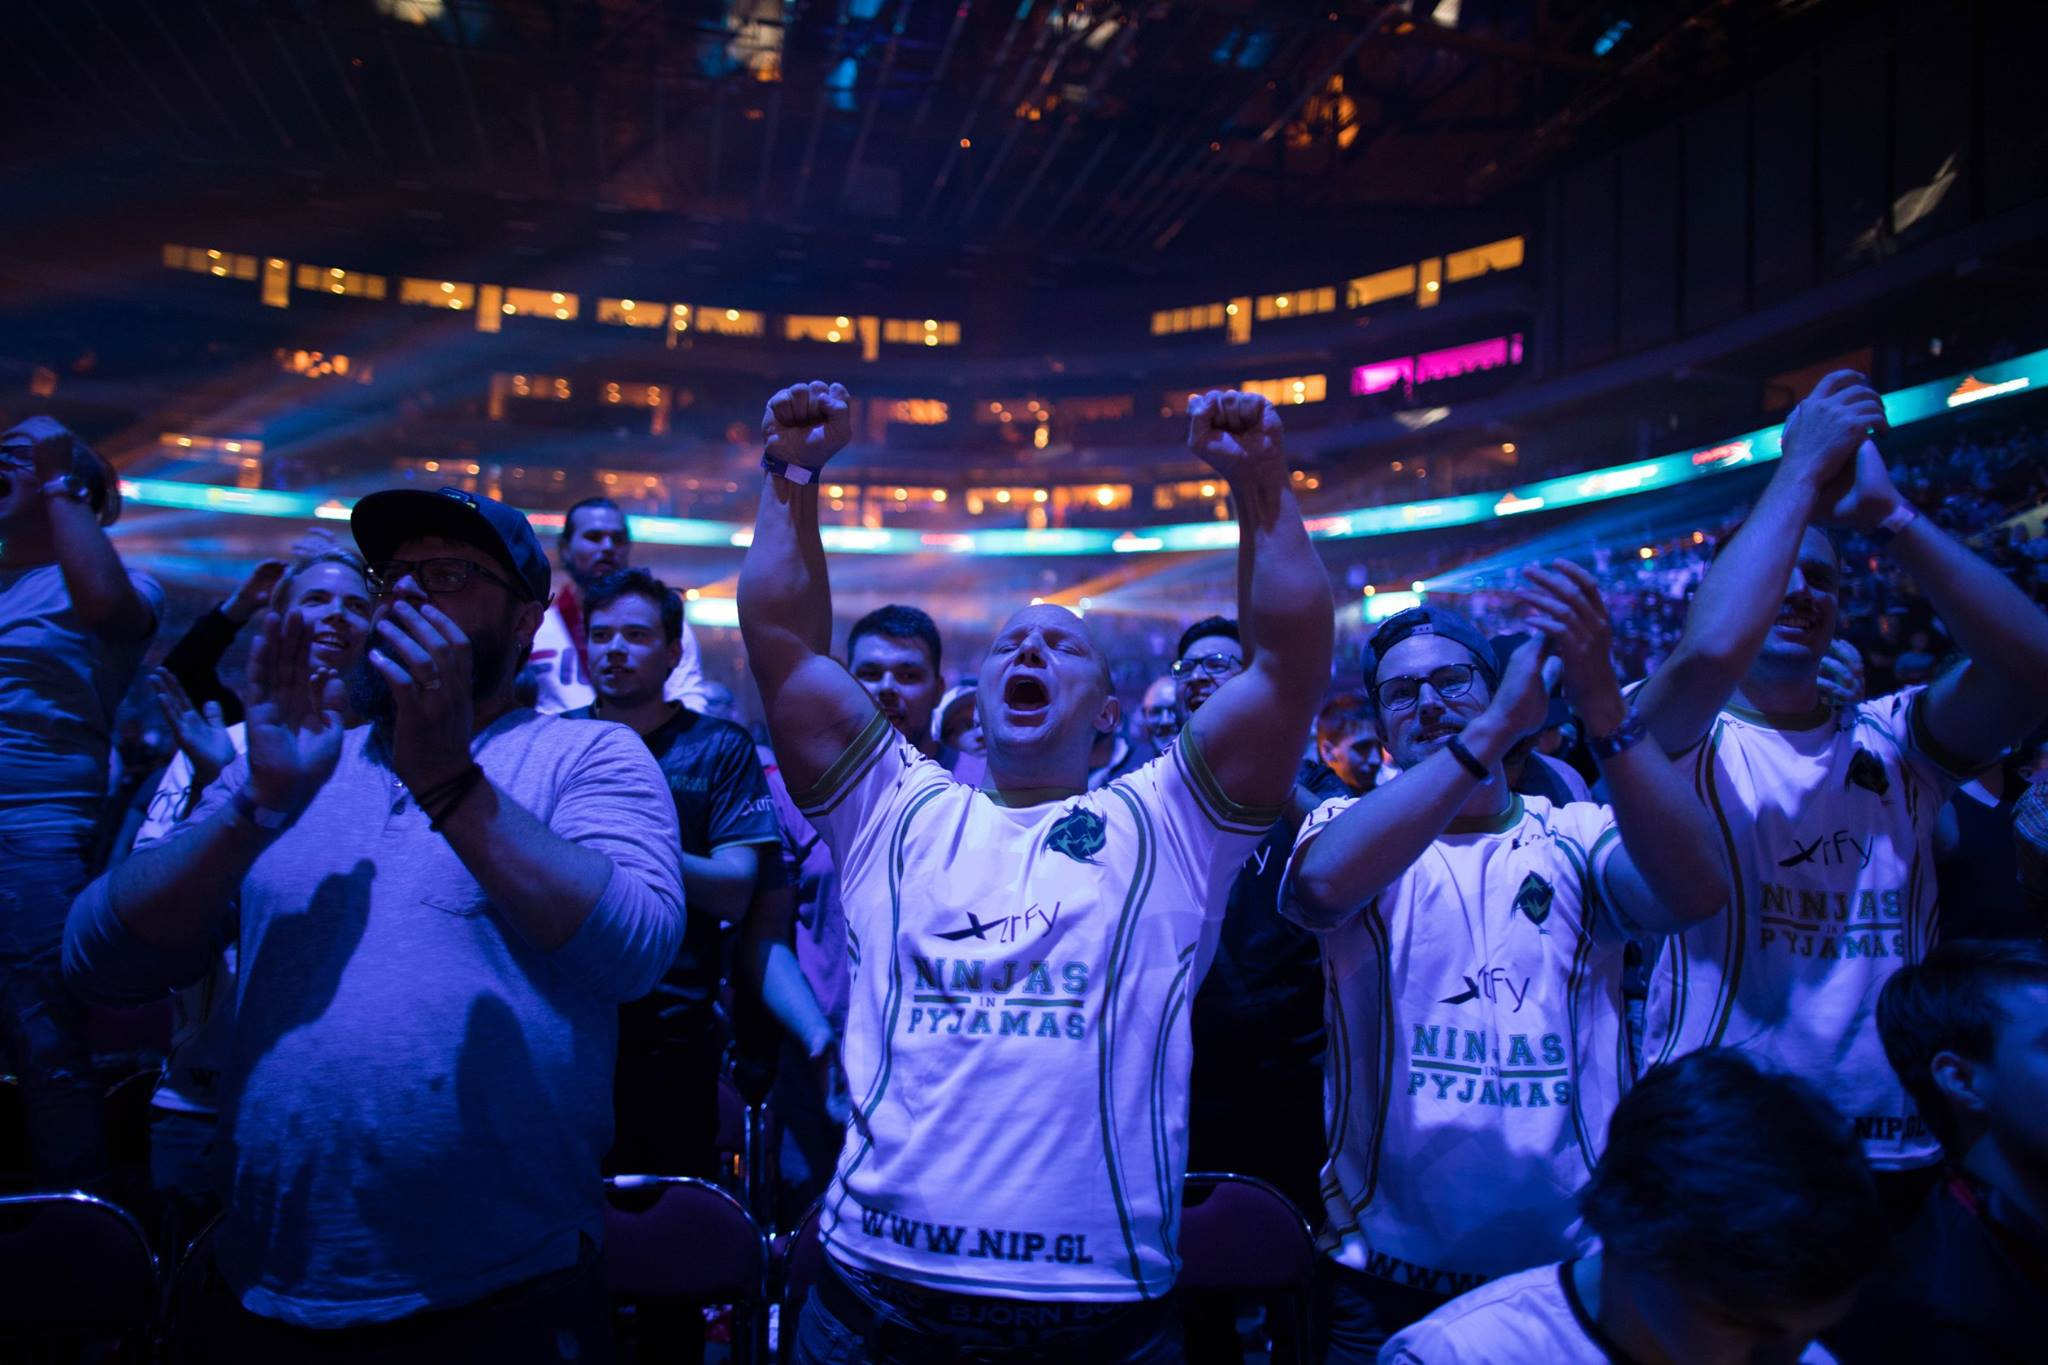 fans cheer at the BLAST Pro series esports event